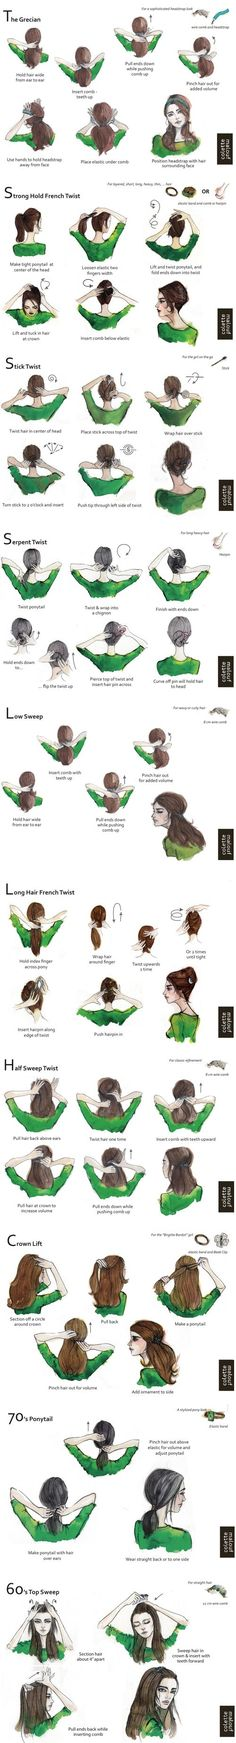 10 hairstyles - gorgeous illustrations